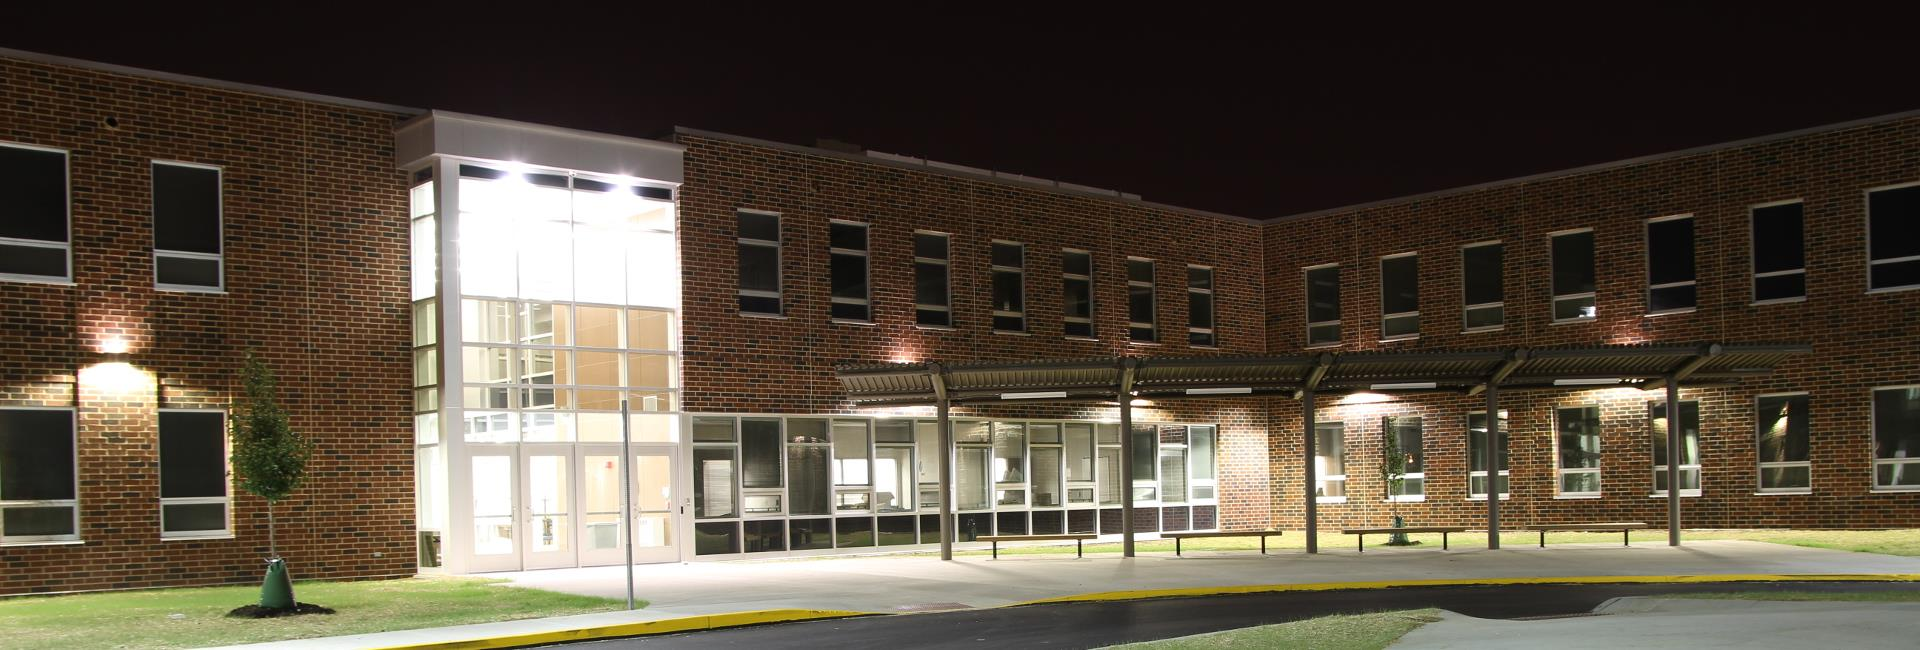 Brooklyn Intermediate School Front Door at Night